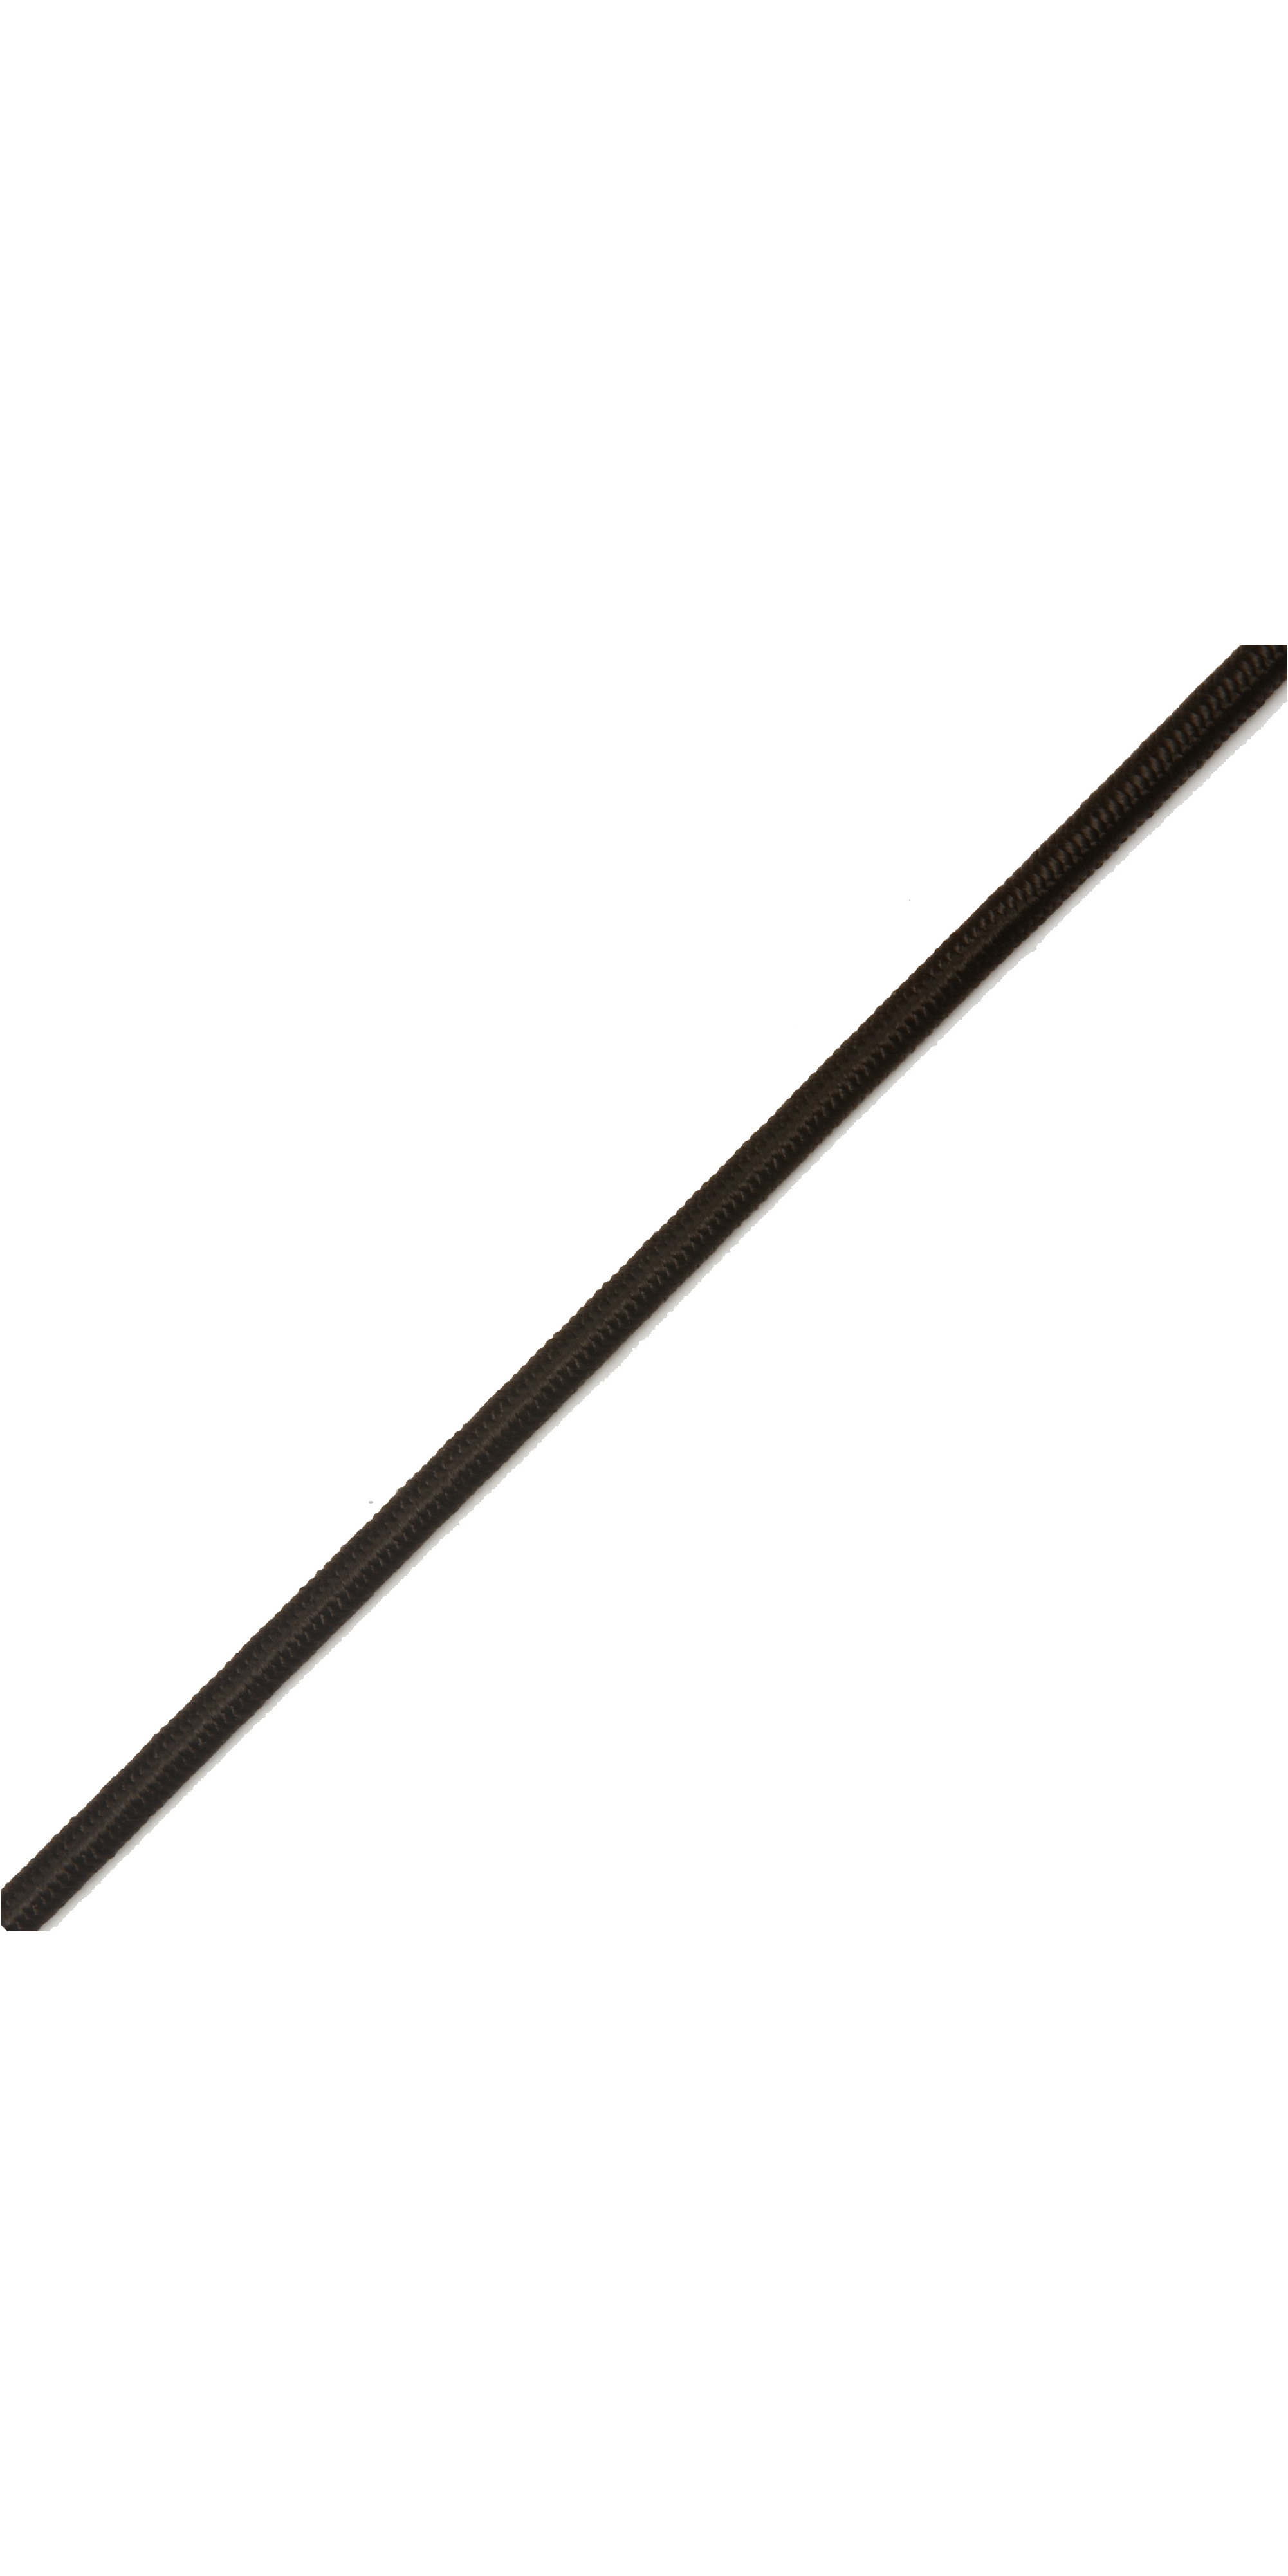 Kingfisher General Purpose Shockcord Black SK0X1 - Price per metre